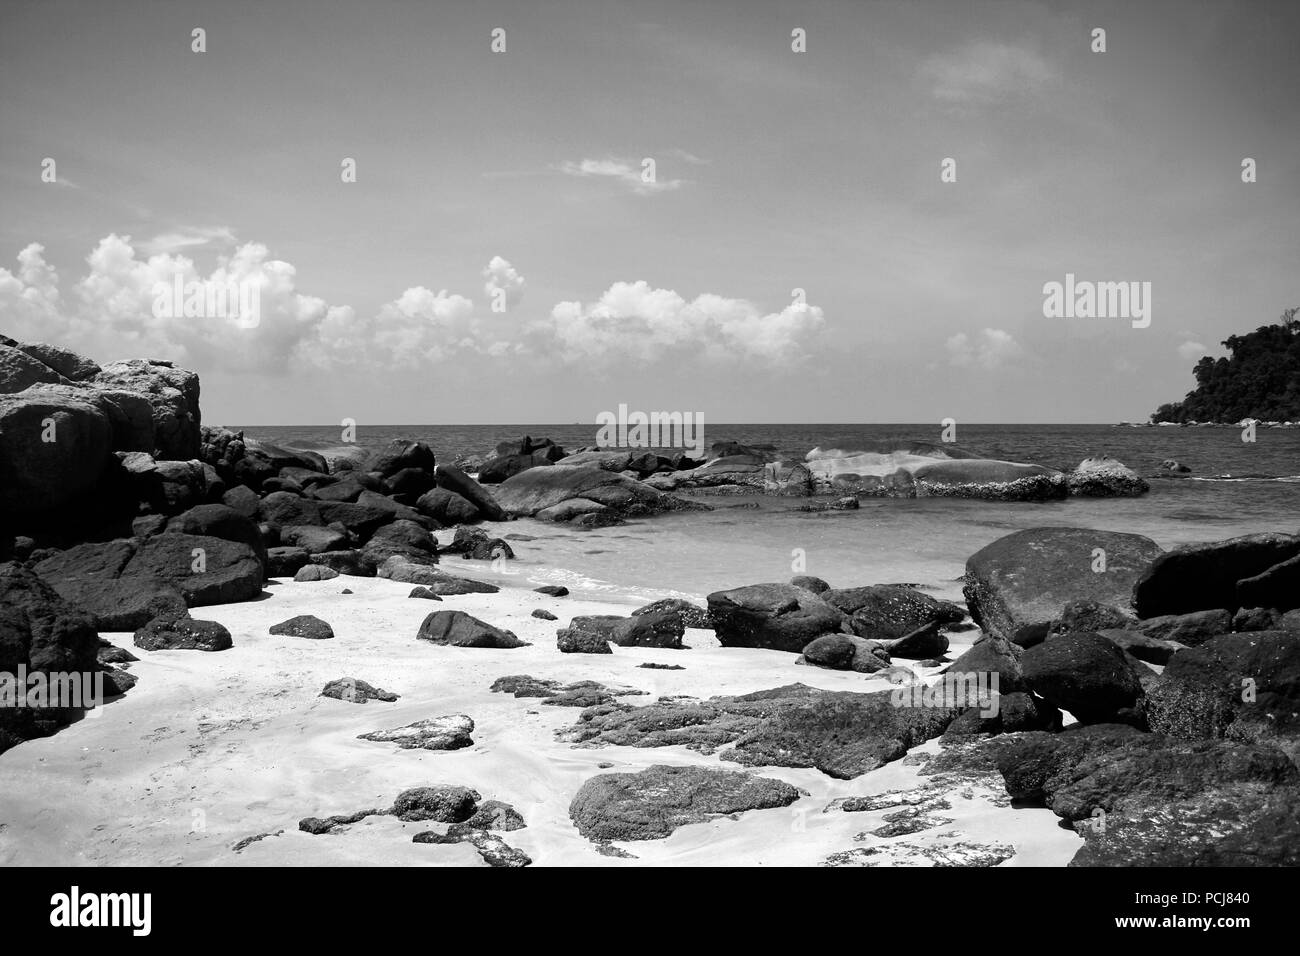 Beach on Pulao Tioman Malaysia in black and white - Stock Image